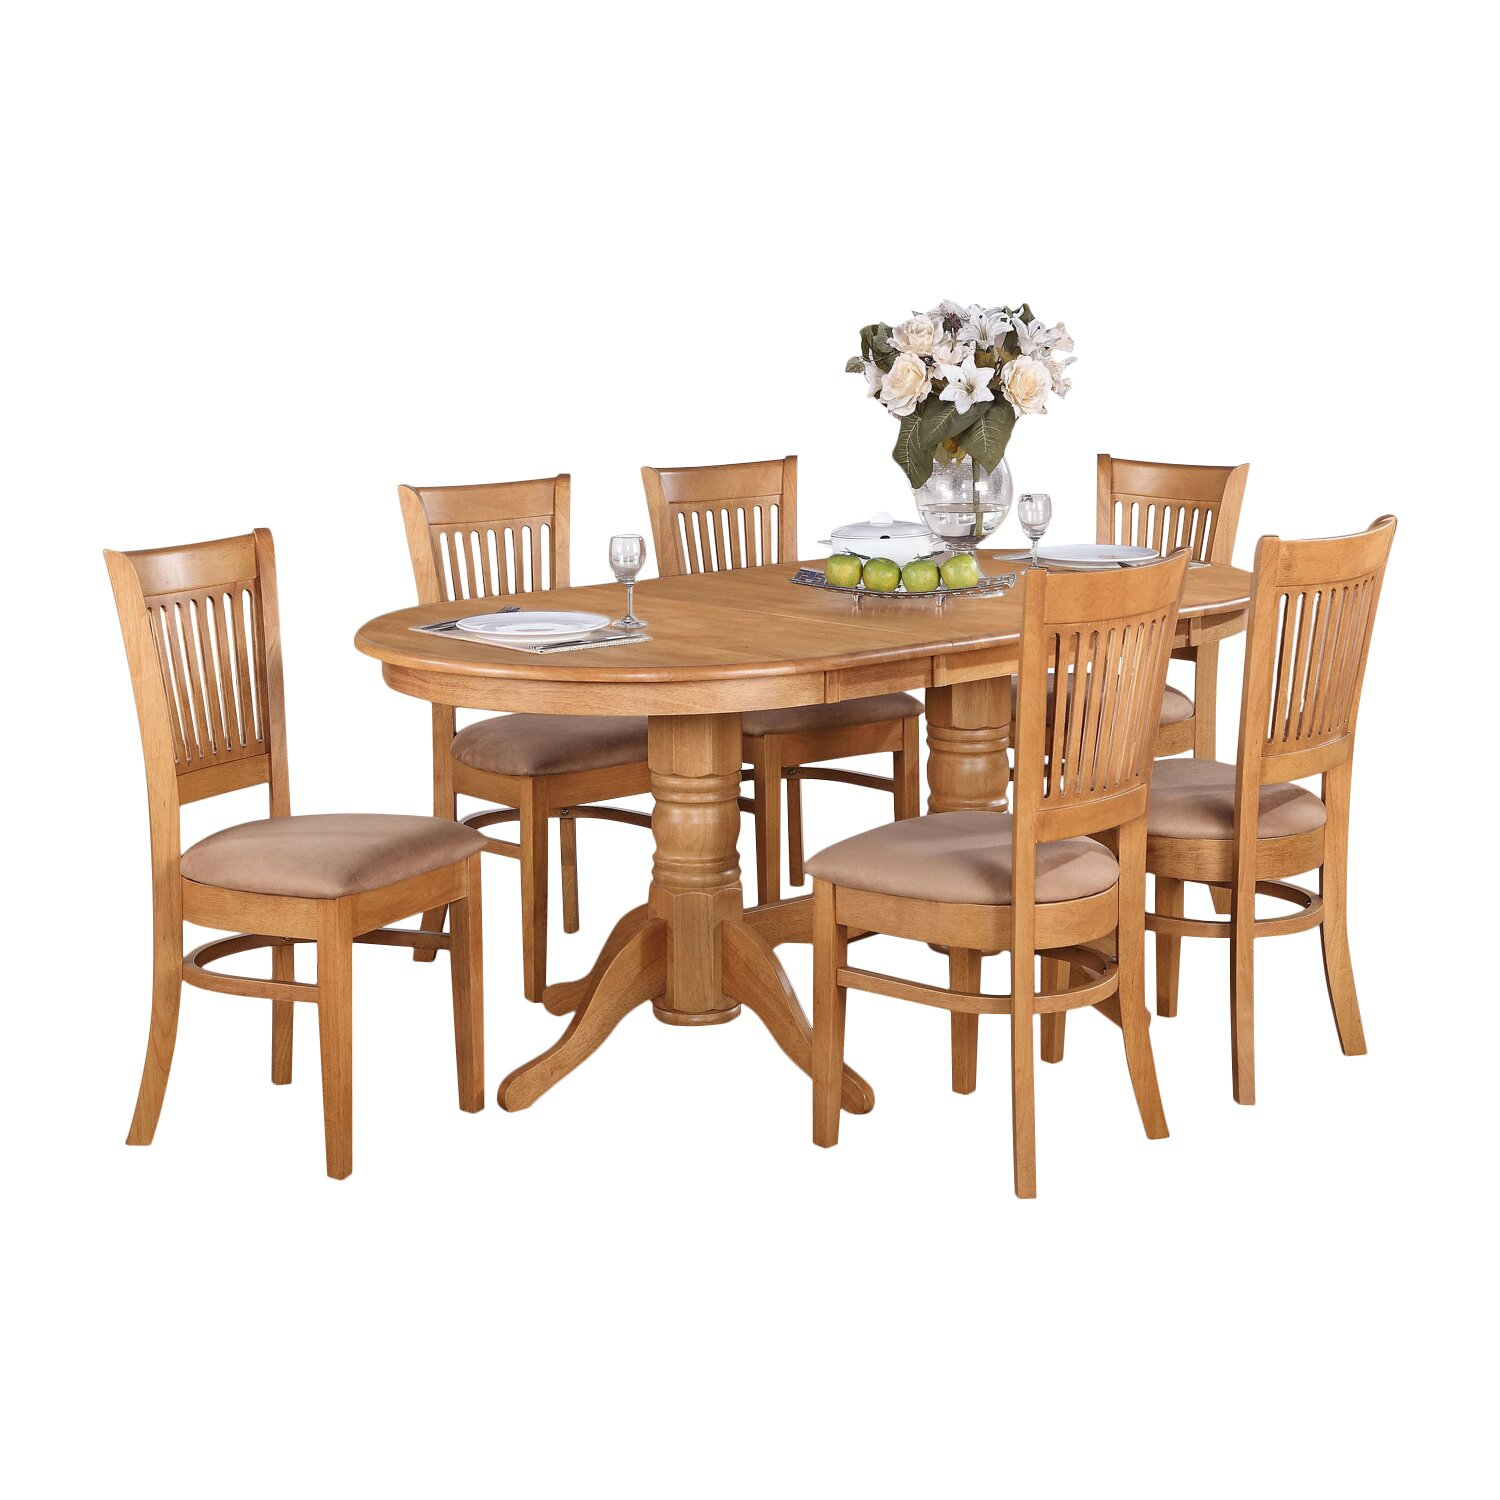 Darby home co rockdale 7 piece dining set reviews for 2 piece dining room set